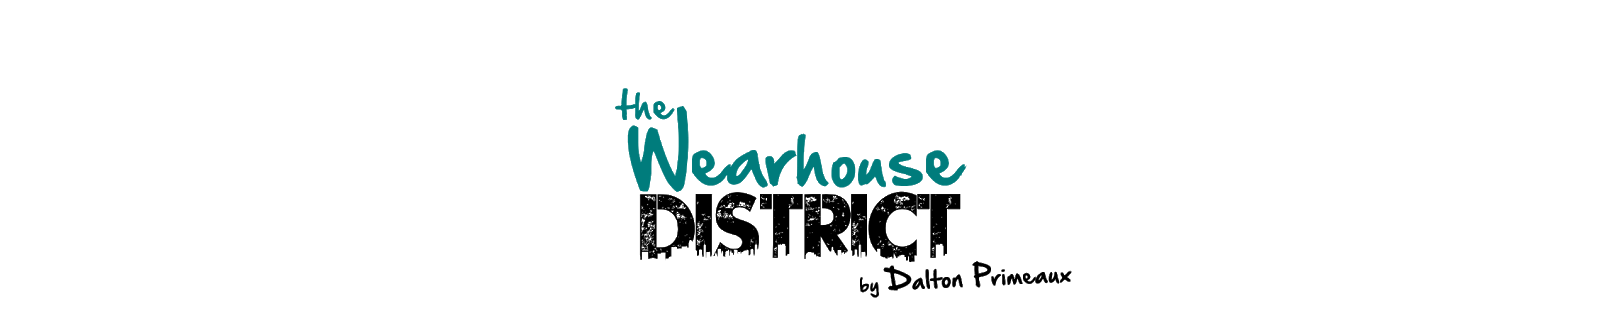 The Wearhouse Distrct